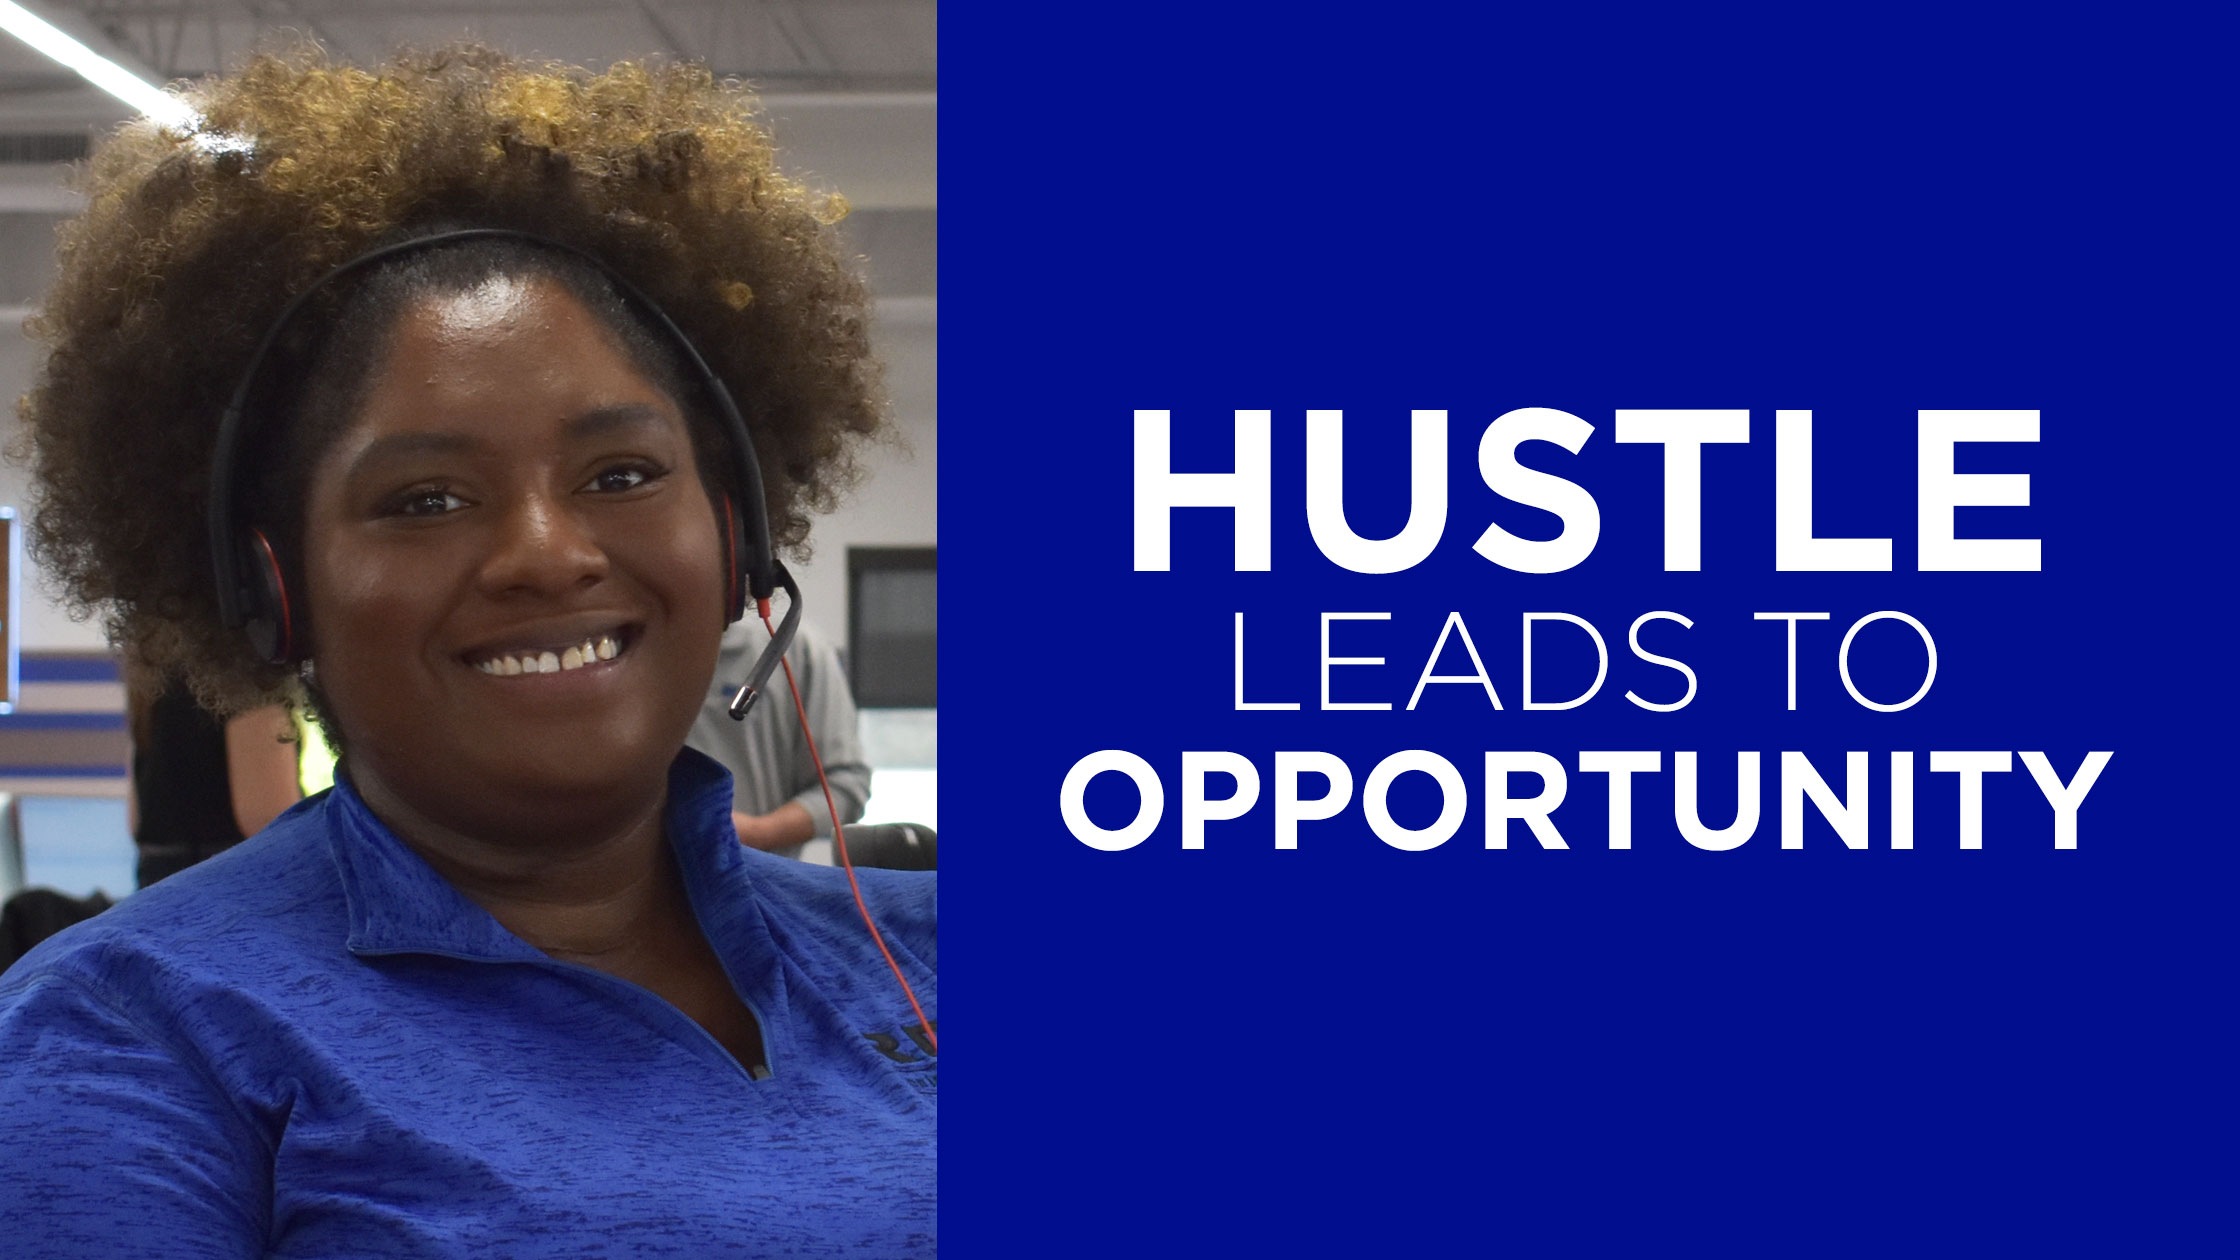 RDI Corporation - Hustle leads to opportunity